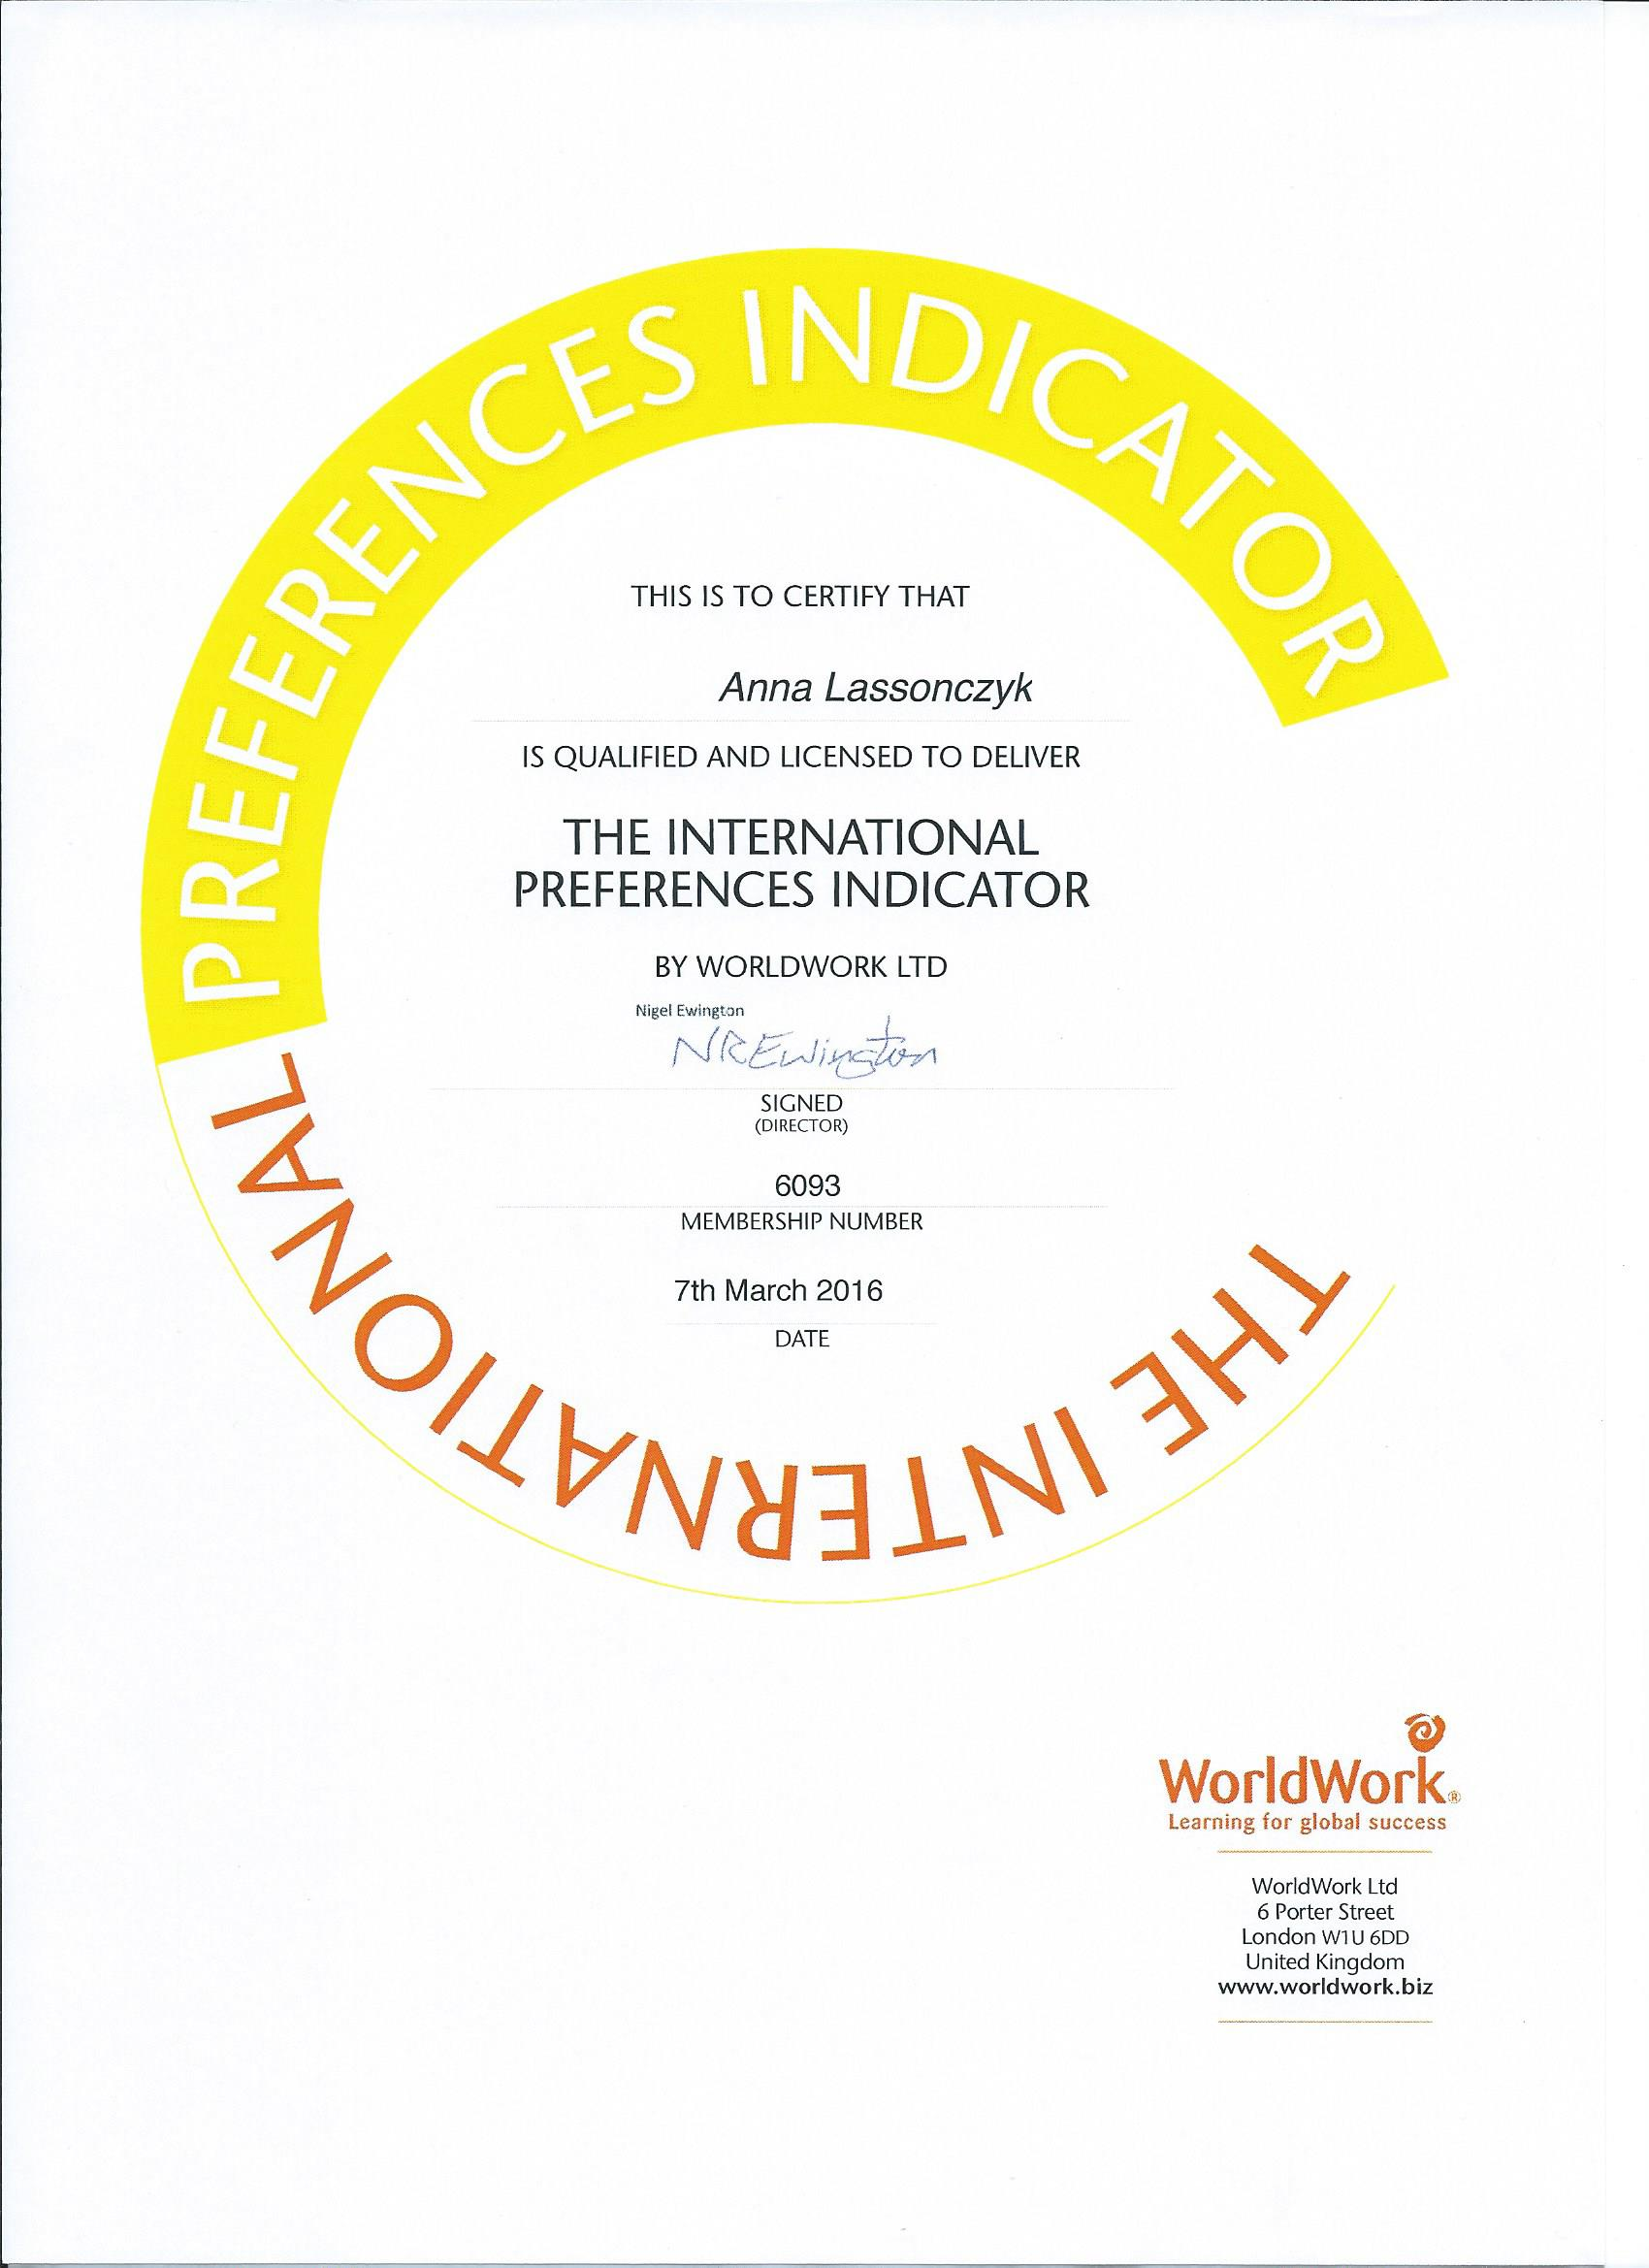 IPI licensed by WorldWokrs